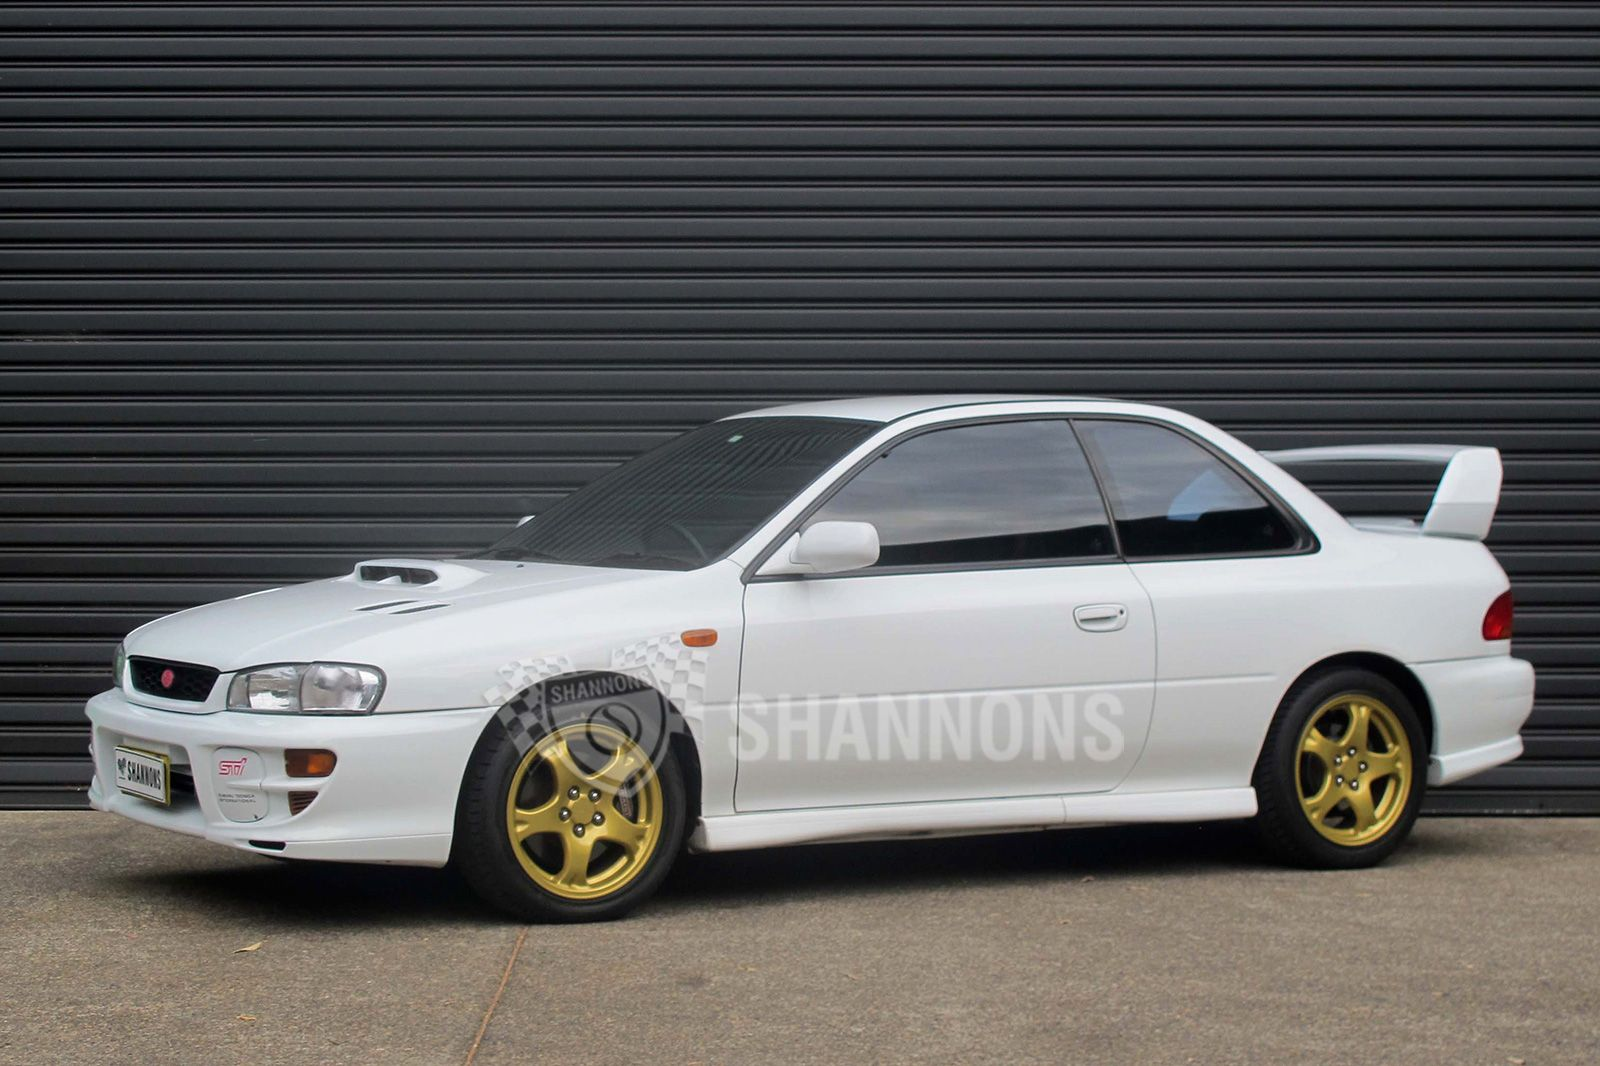 1999 Subaru Impreza WRX STI Version 5